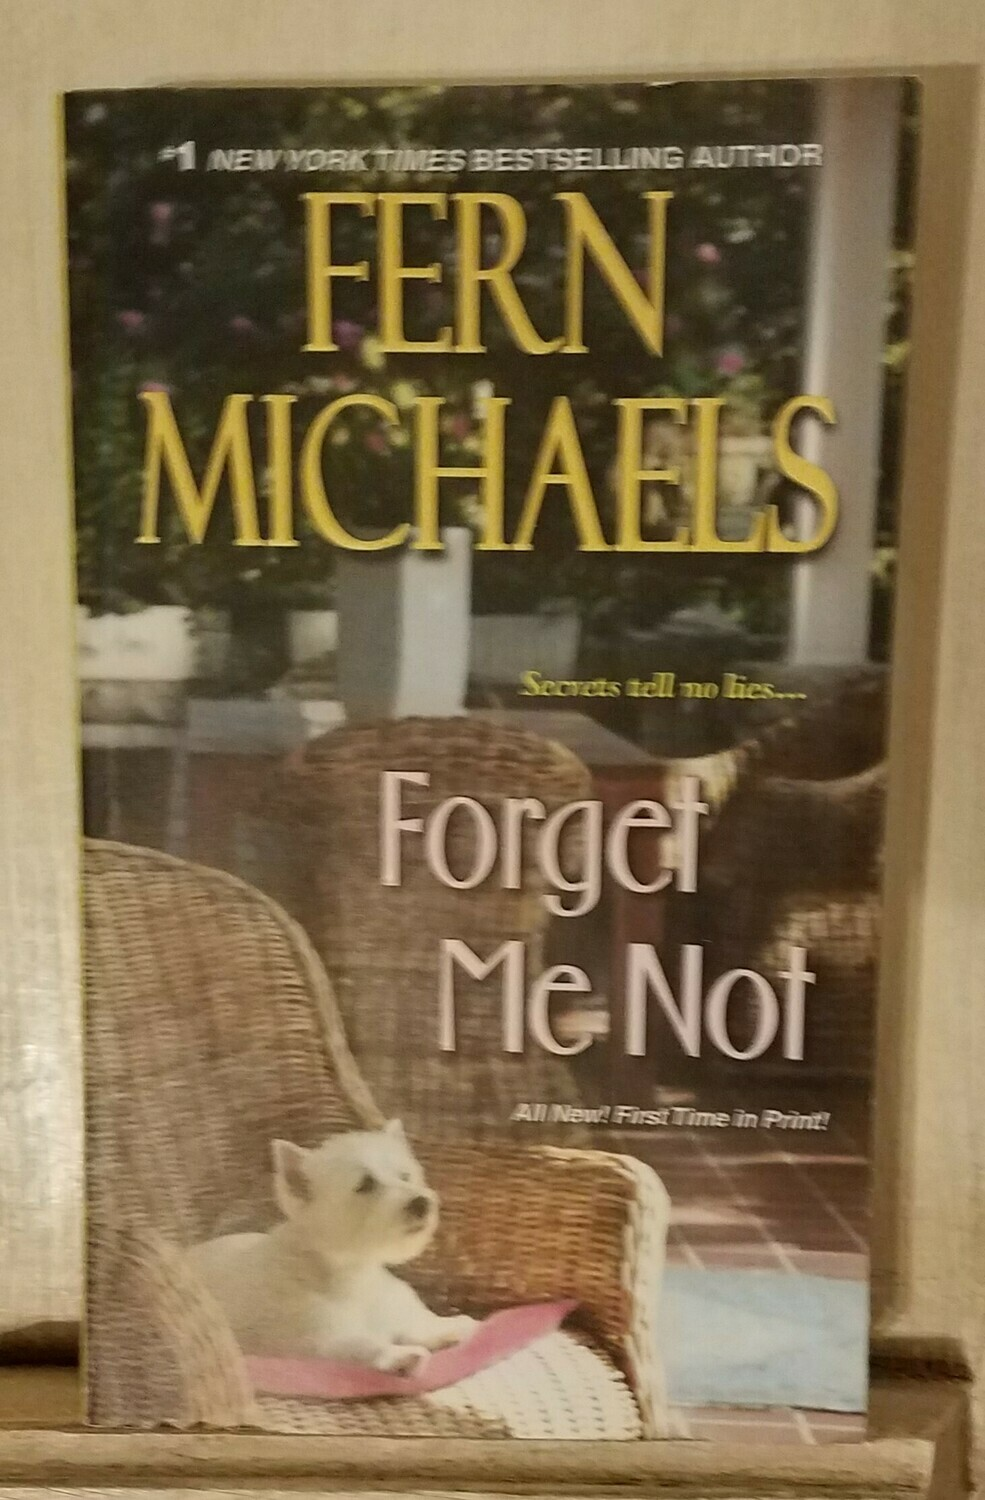 Forget Me Not by Fern Michaels